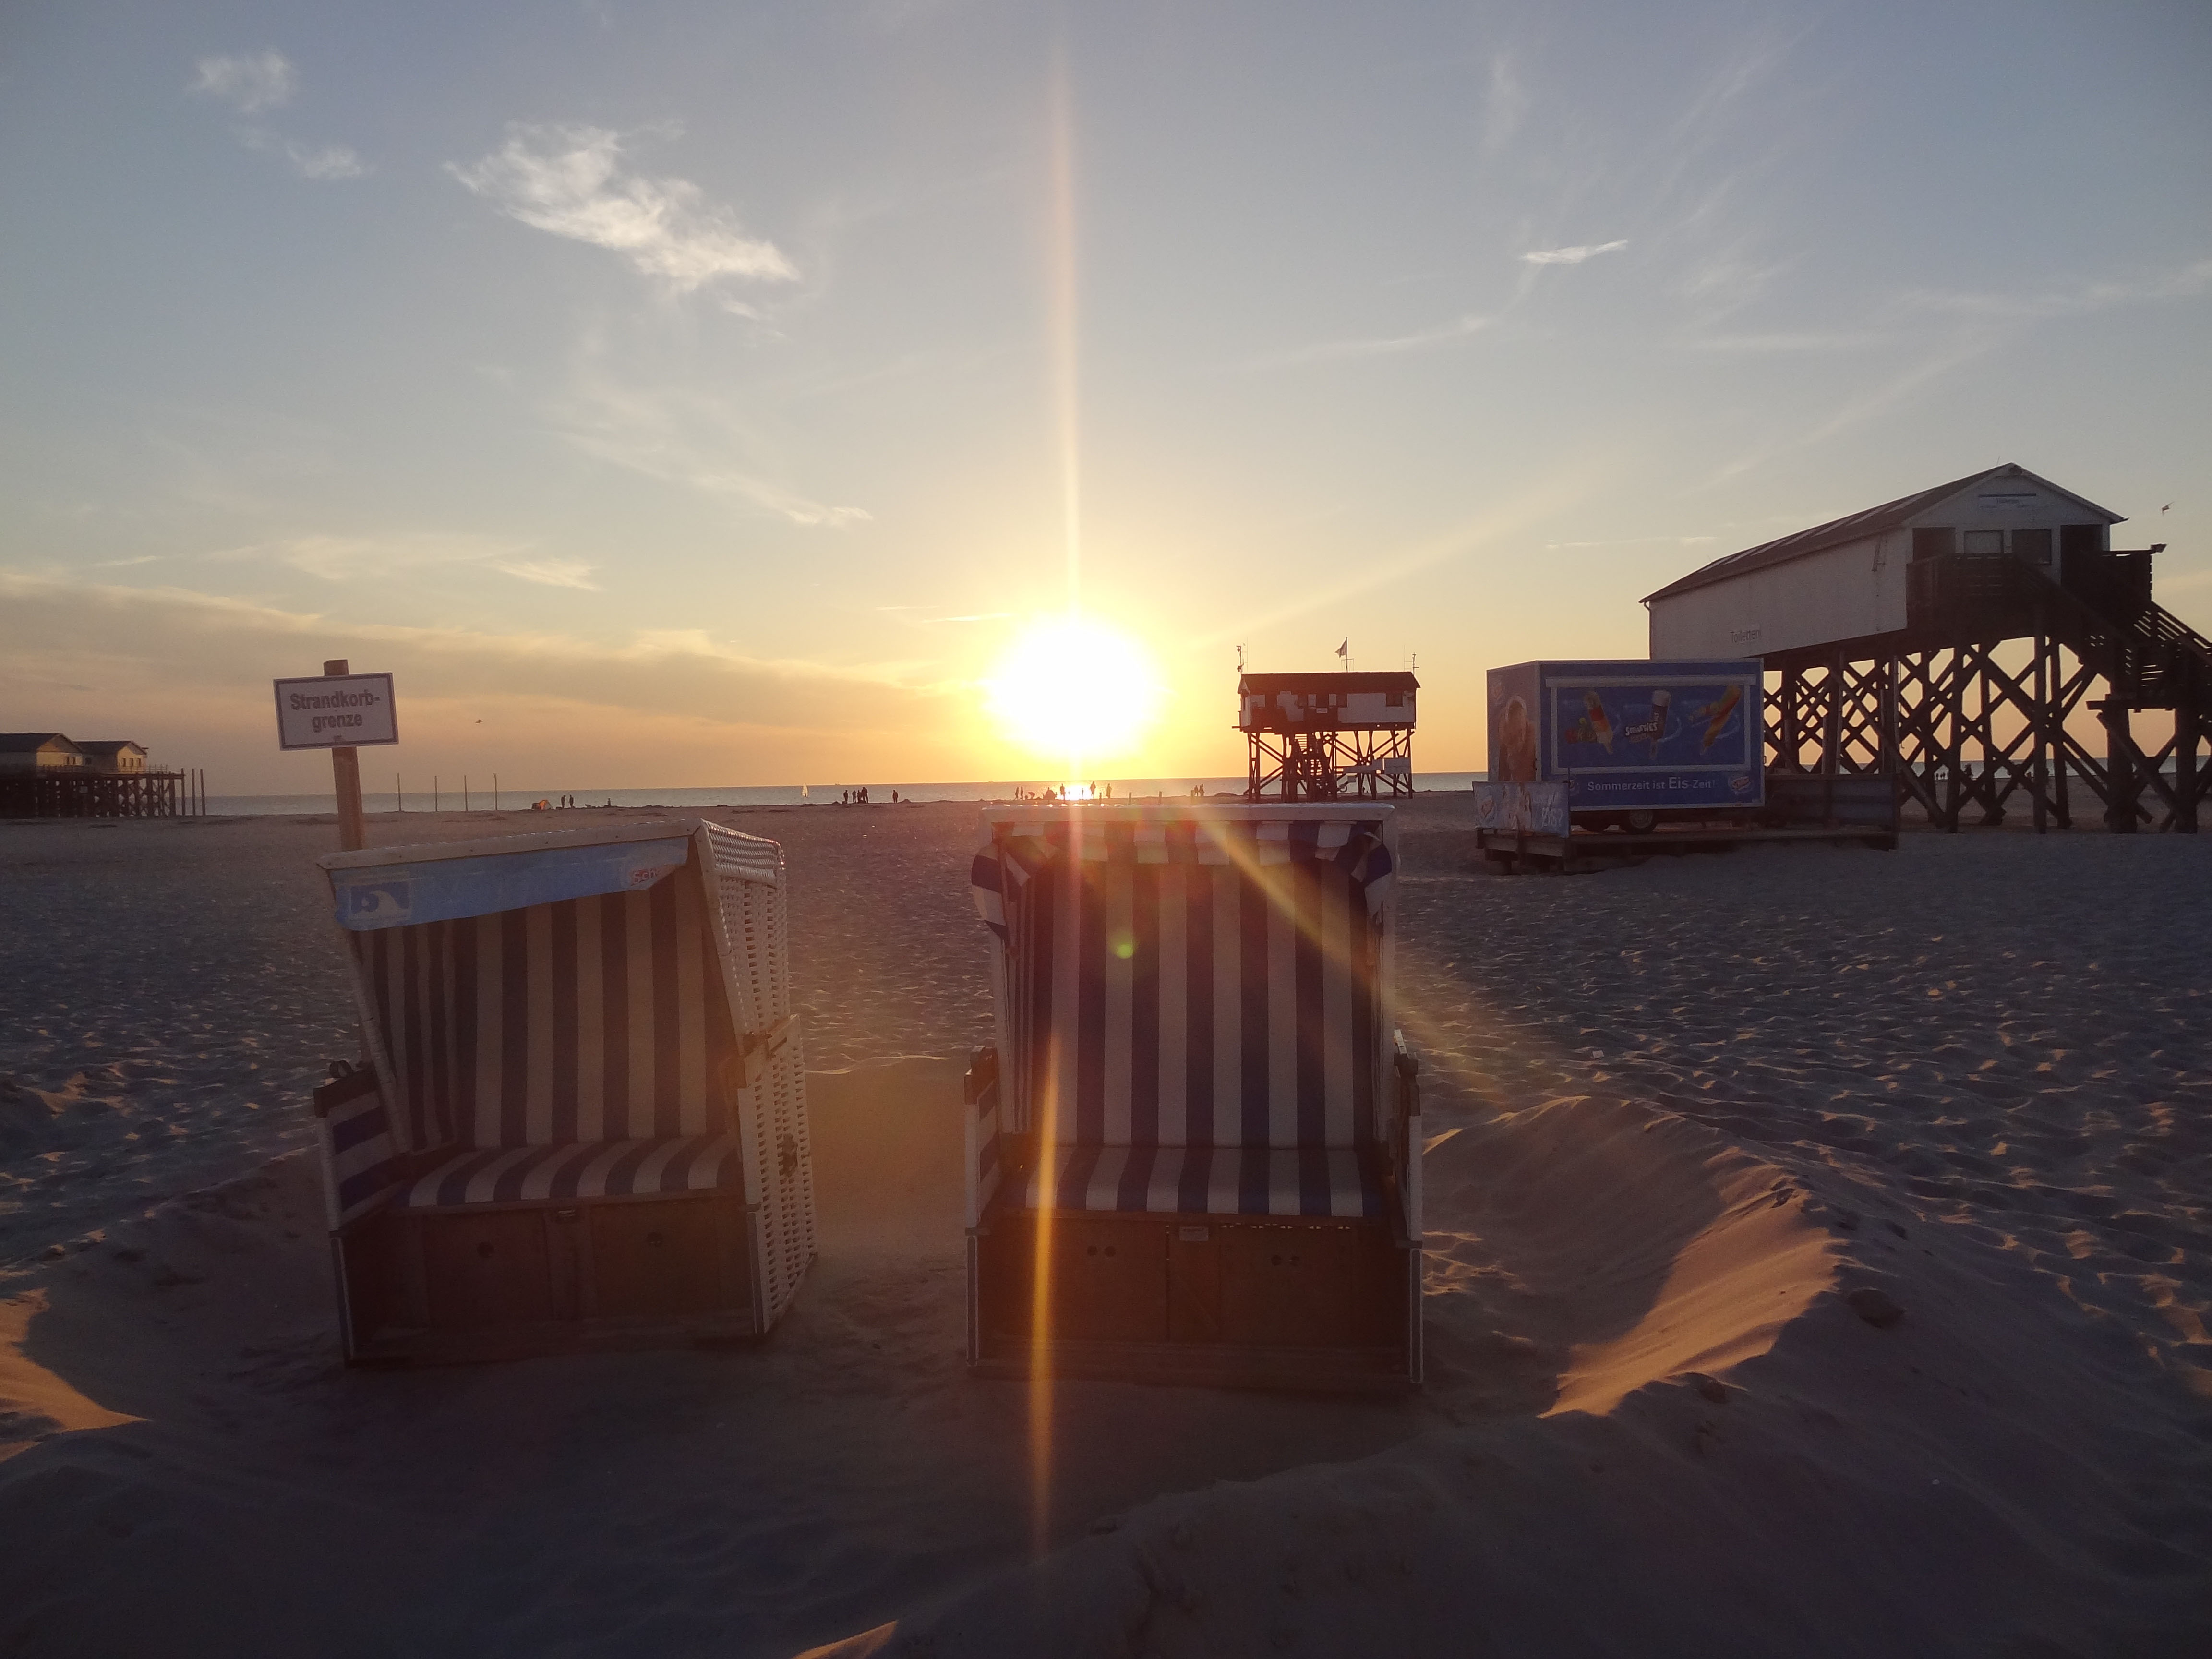 Abendrot am Nordseestrand in St. Peter-Ording